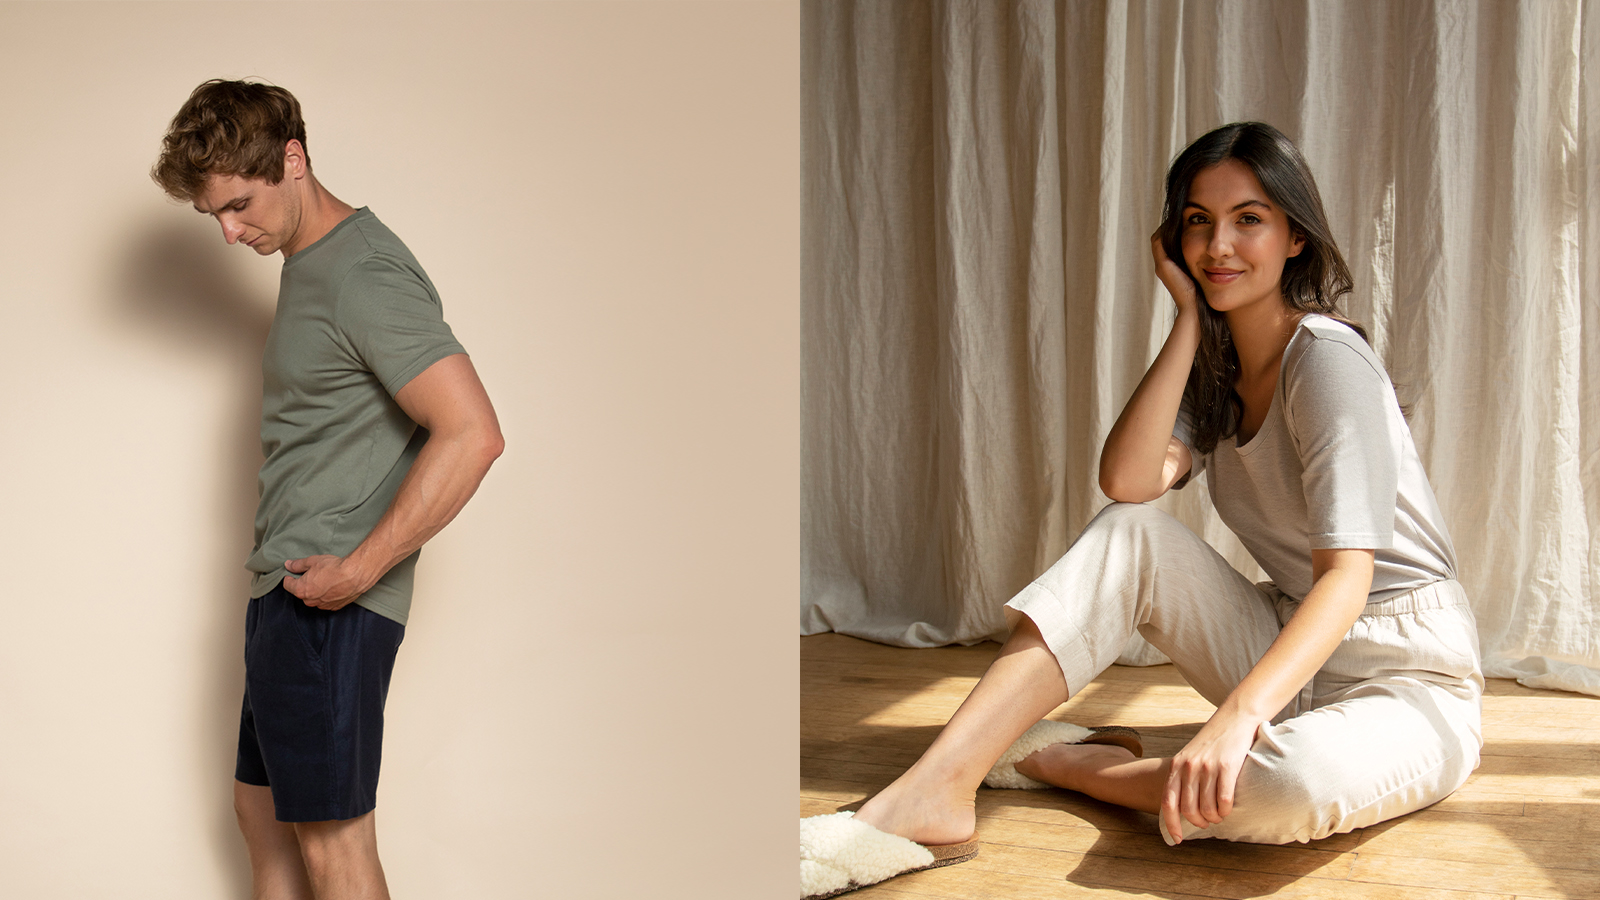 new arrivals: for living, lounging & leisure